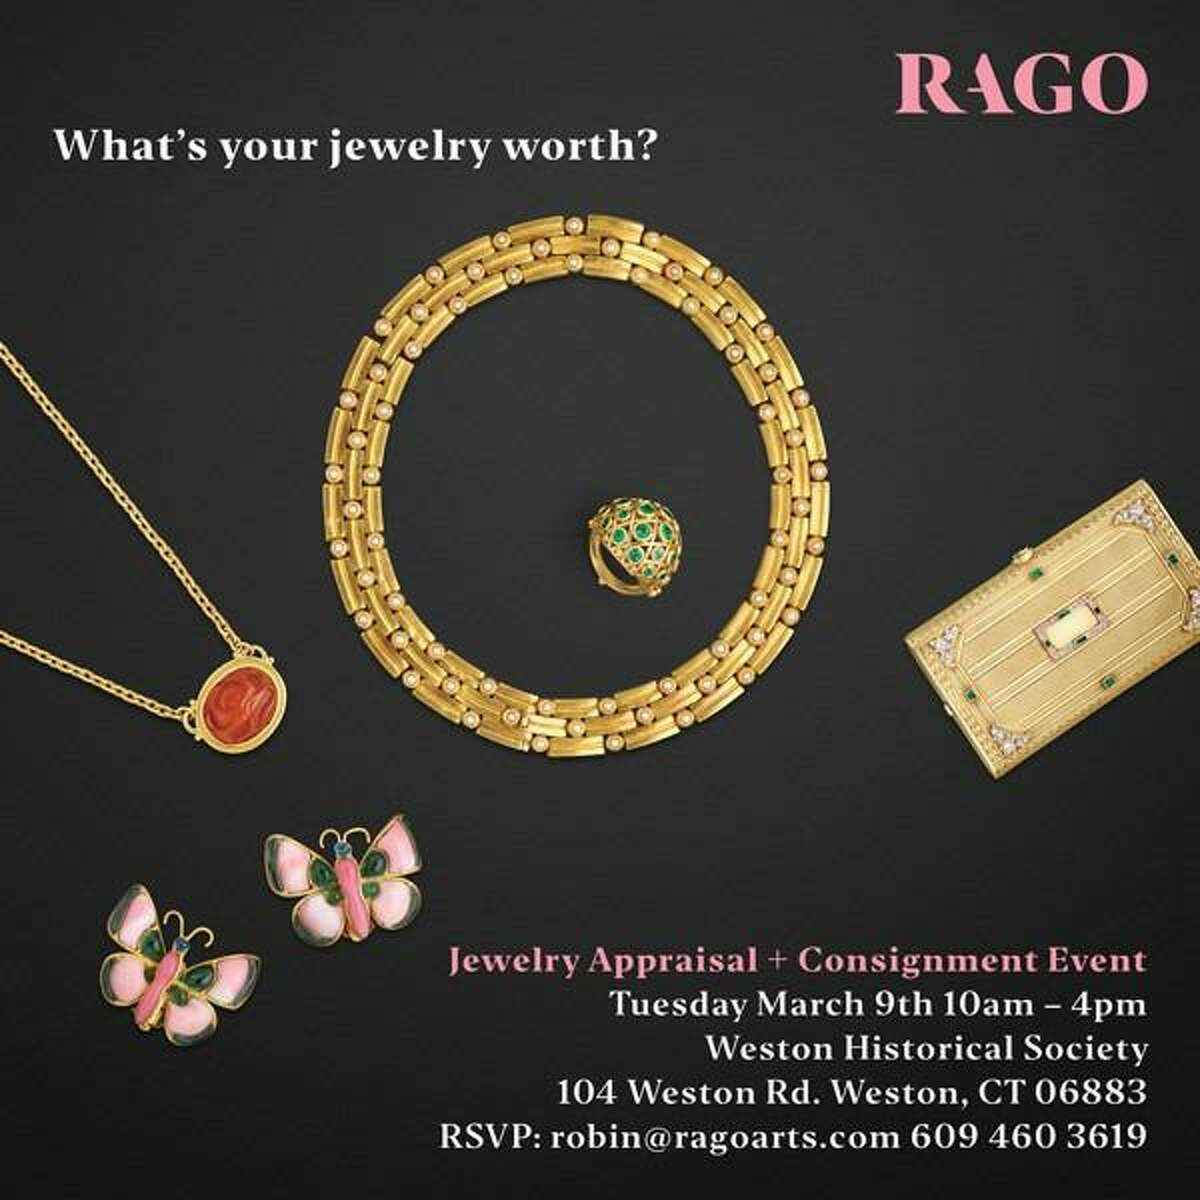 """Join Rago, a leading auction house featured in the PBS' series titled """"The Antiques Road Show,"""" at their 2nd Jewelry Appraisal and Consignment Event March 9, 2021 from 10 .a.m. to 4 p.m. at the Weston Historical Society, 104 Weston Road, in Weston, Connecticut. Appointments are required. RSVP to Rago at robin@ragoarts.com, or call 609 460 3619. Rago will donate a portion of its commission on property consigned from this event to the Historical Society. Pictured is the flyer for the event."""